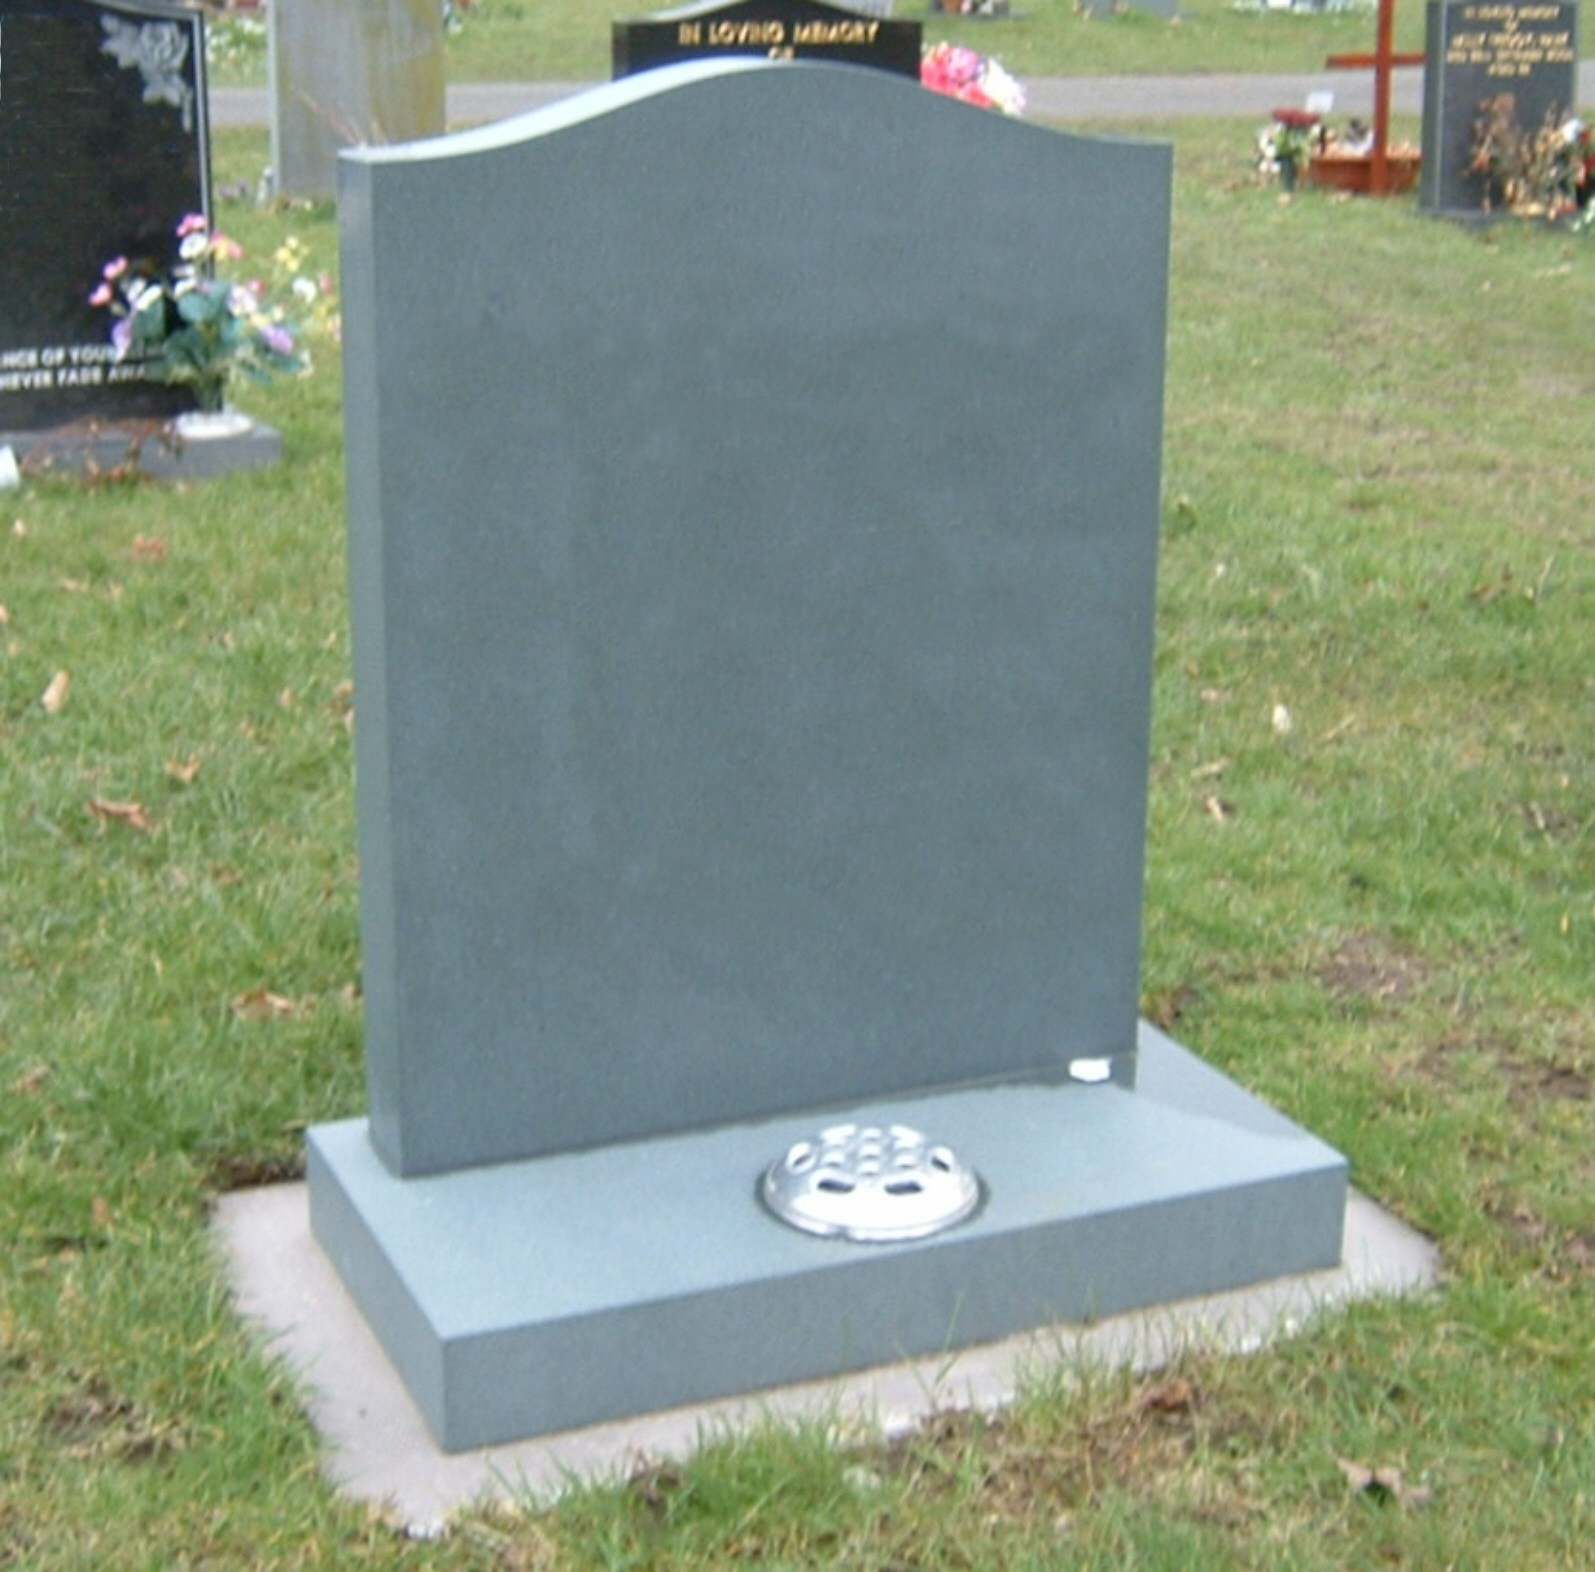 PJ20 - Ever green granite can be a more economical alternative to slate accepted in the Kendal diocese of Churchyard regulations.  Slate Green, Bespoke, Headstones, Lawn Memorials